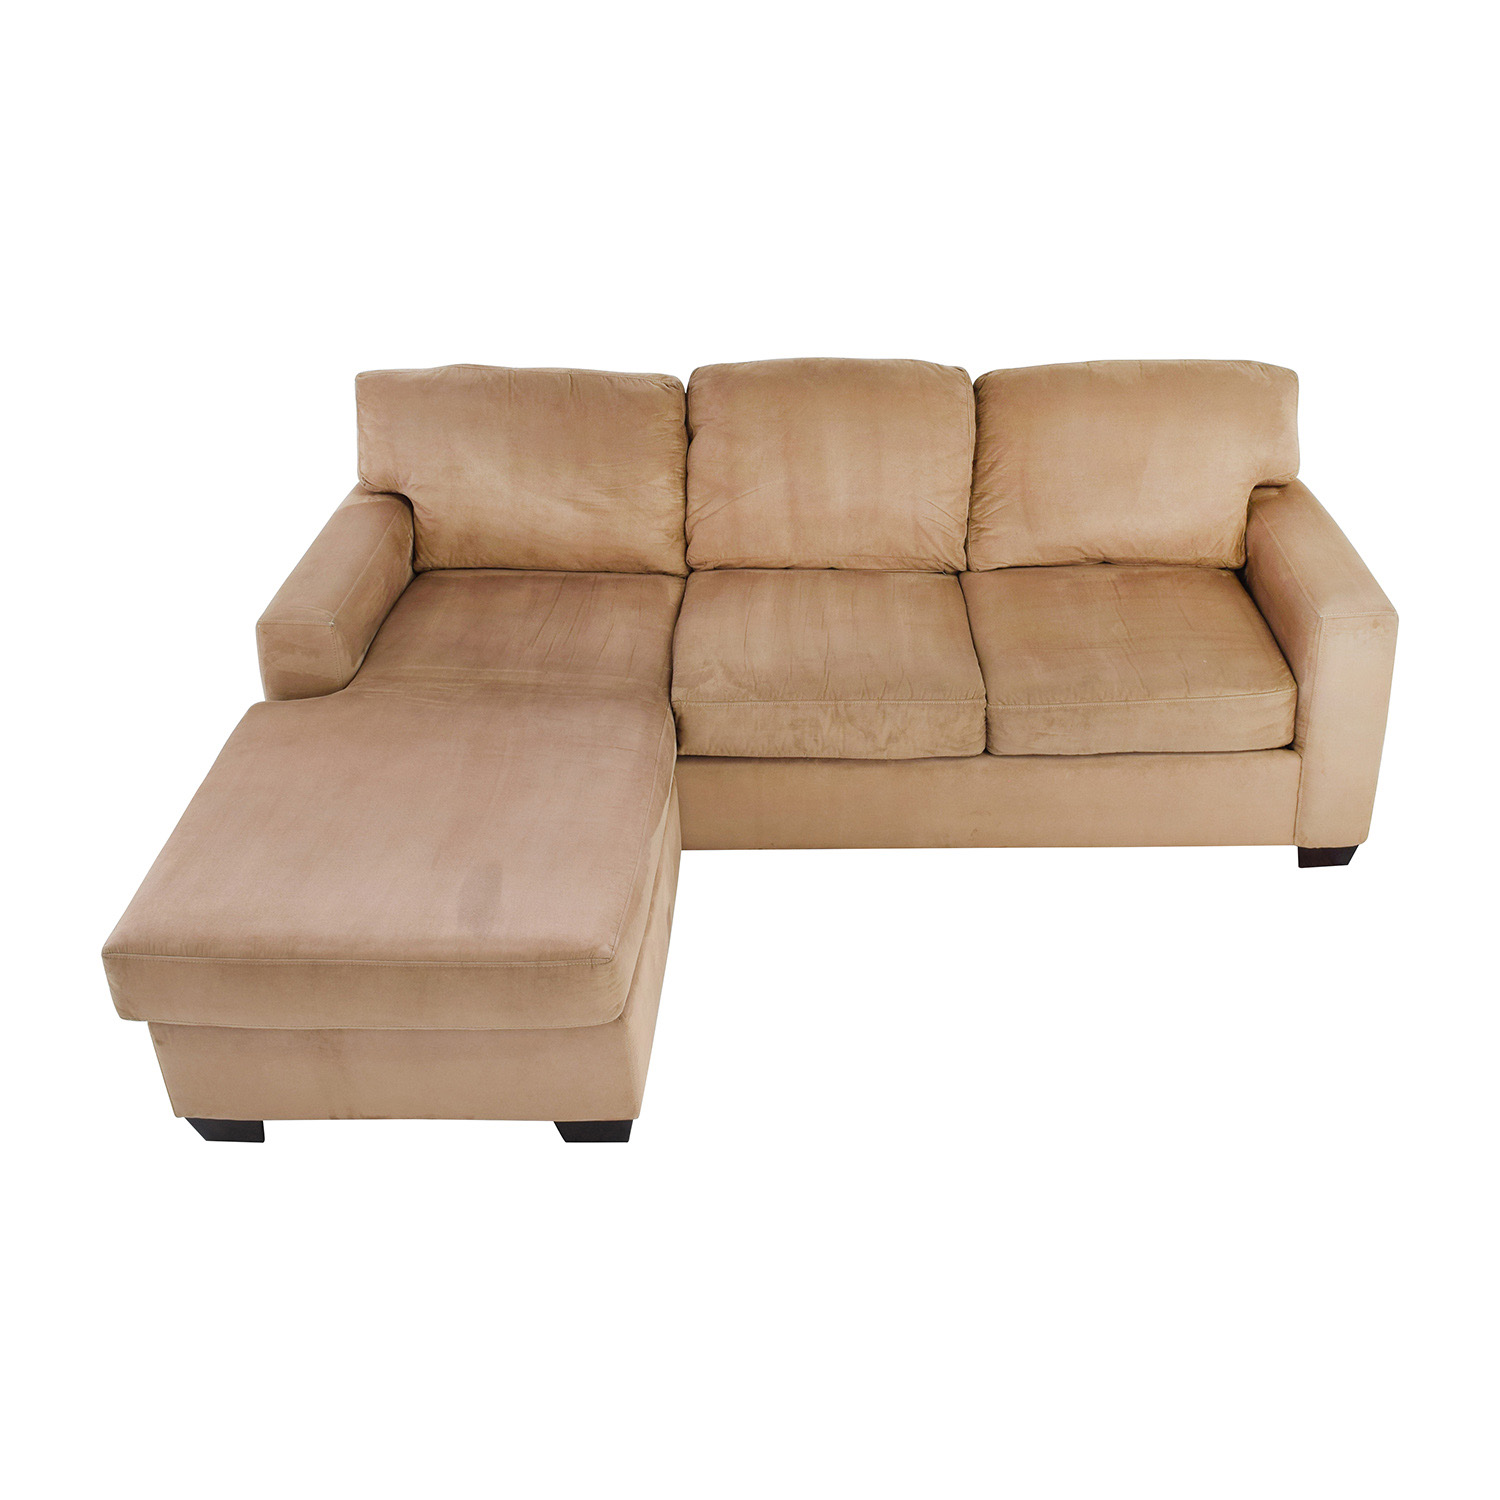 75 off max home max home tan sectional chaise sofa sofas Loveseat chaise sectional